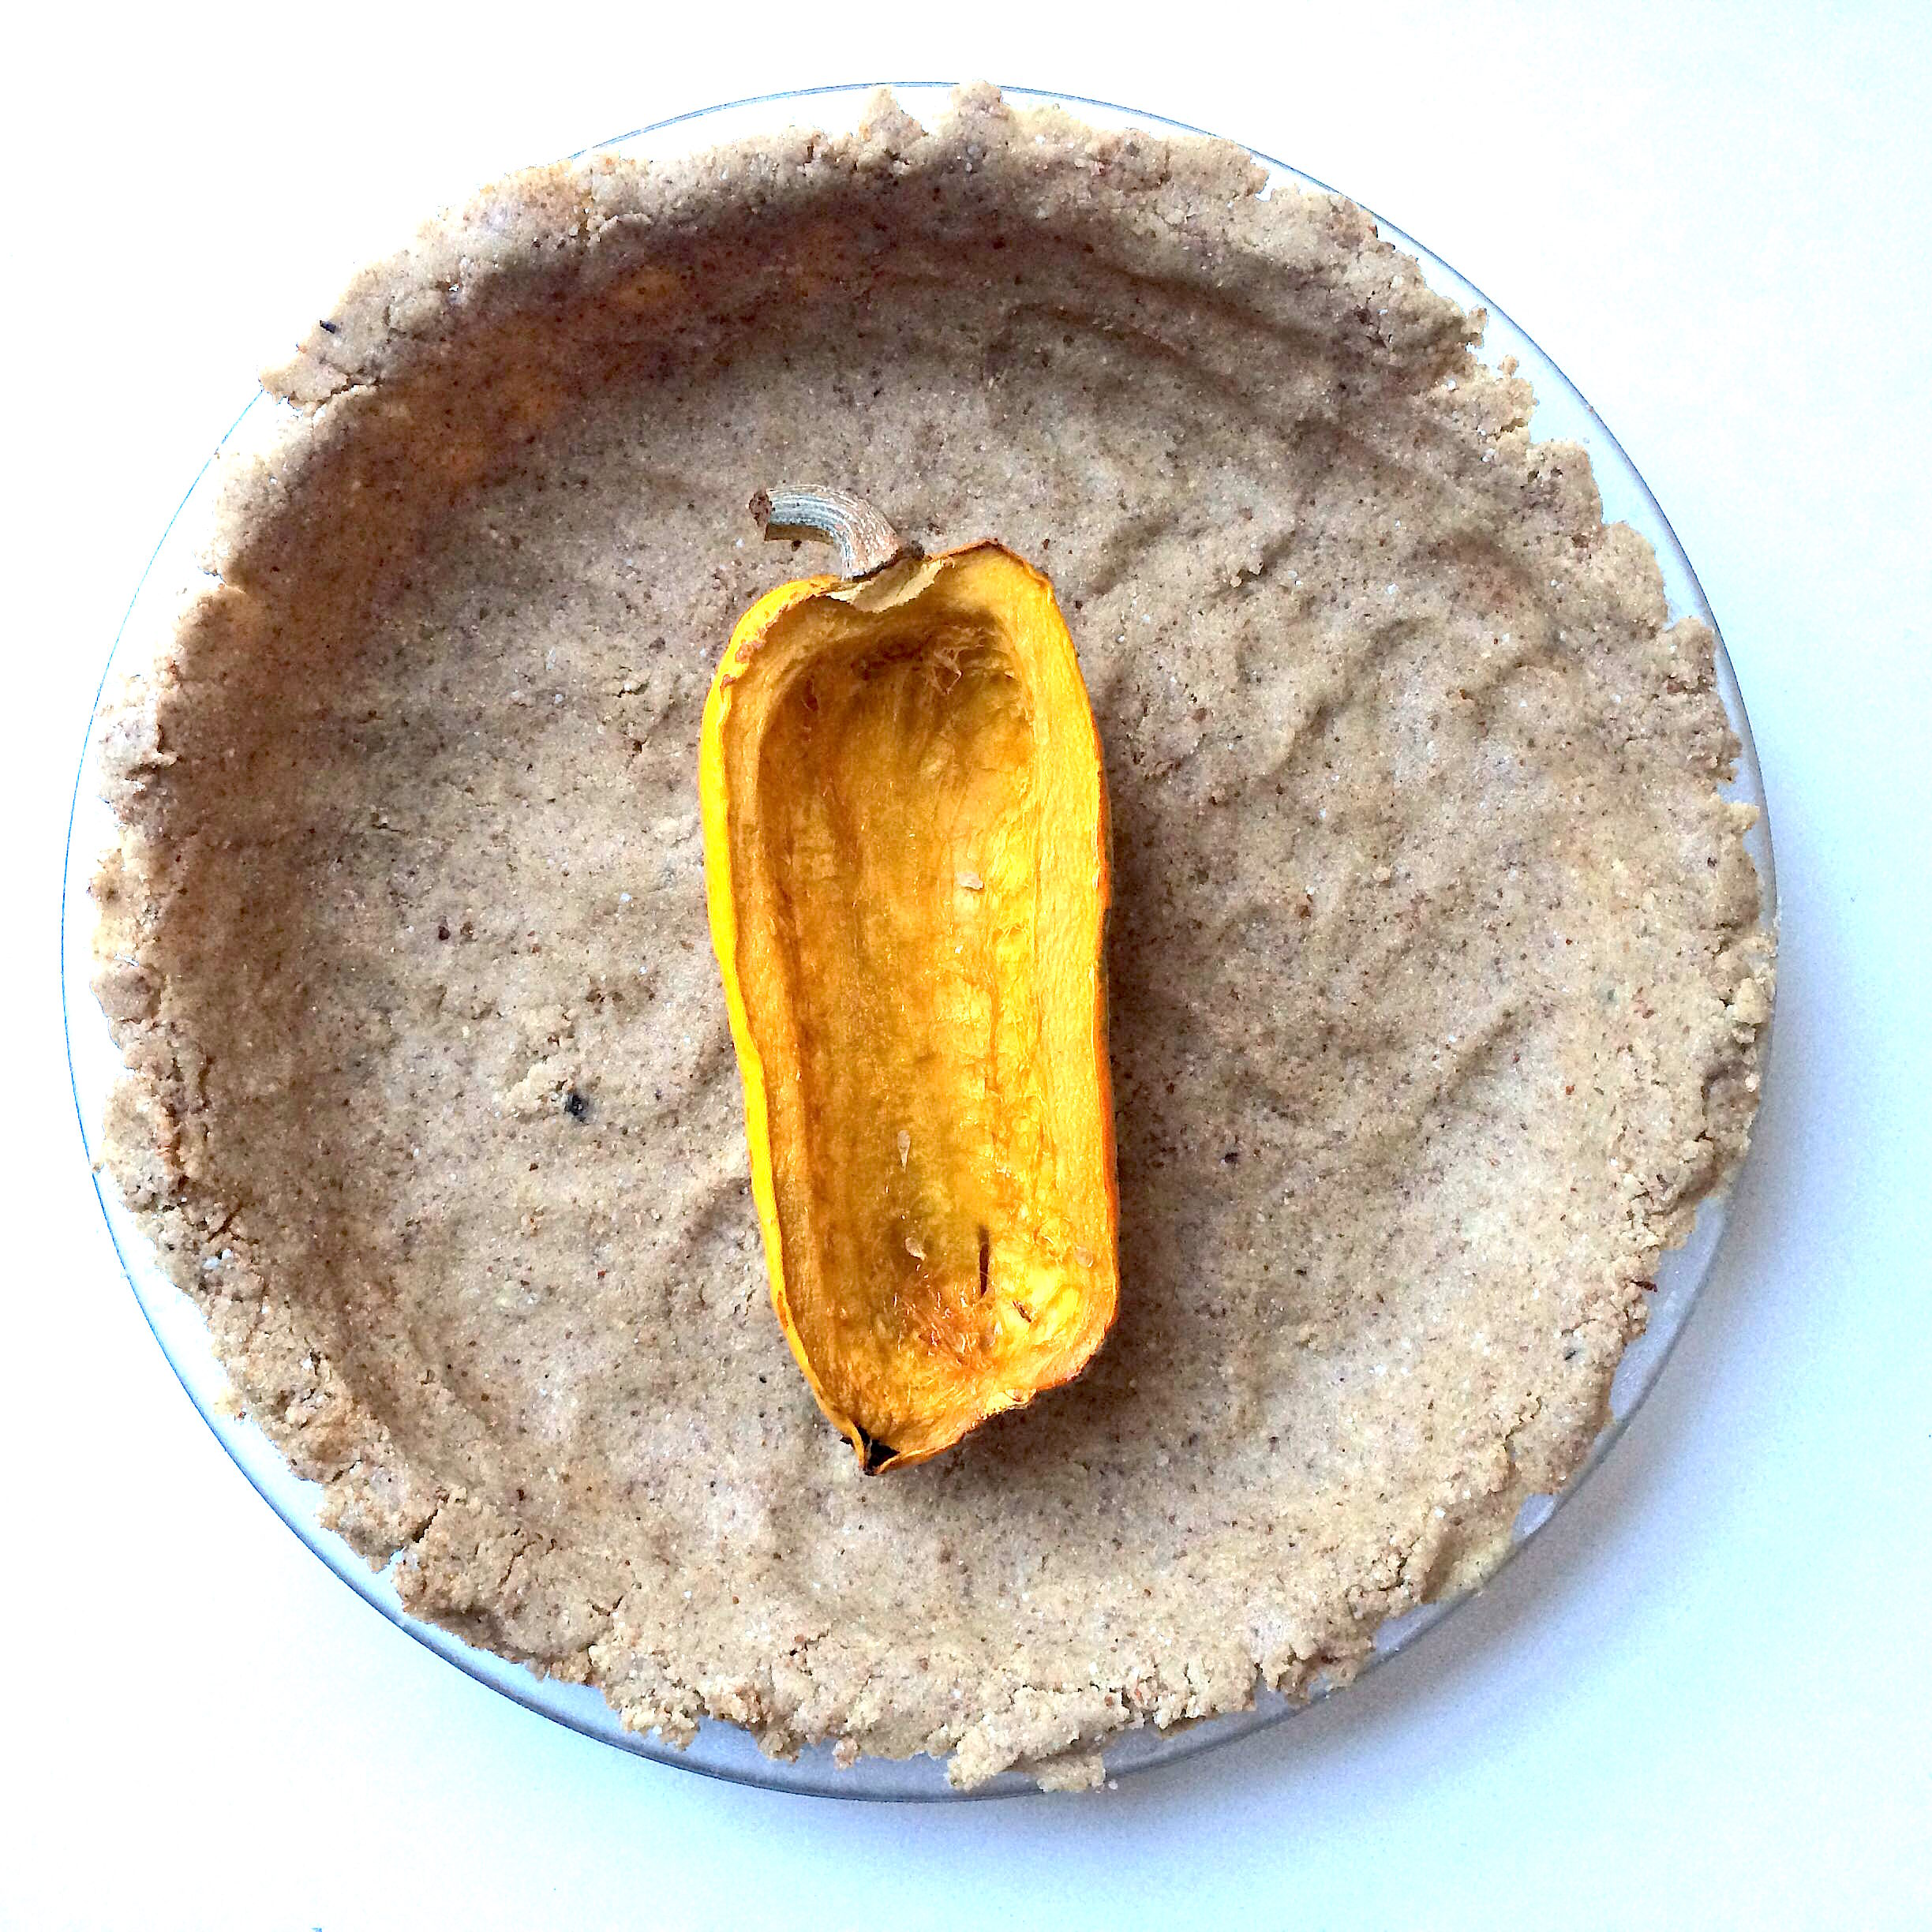 Delicata squash roasted, and pie crust prepared and getting spread on the pie dish.